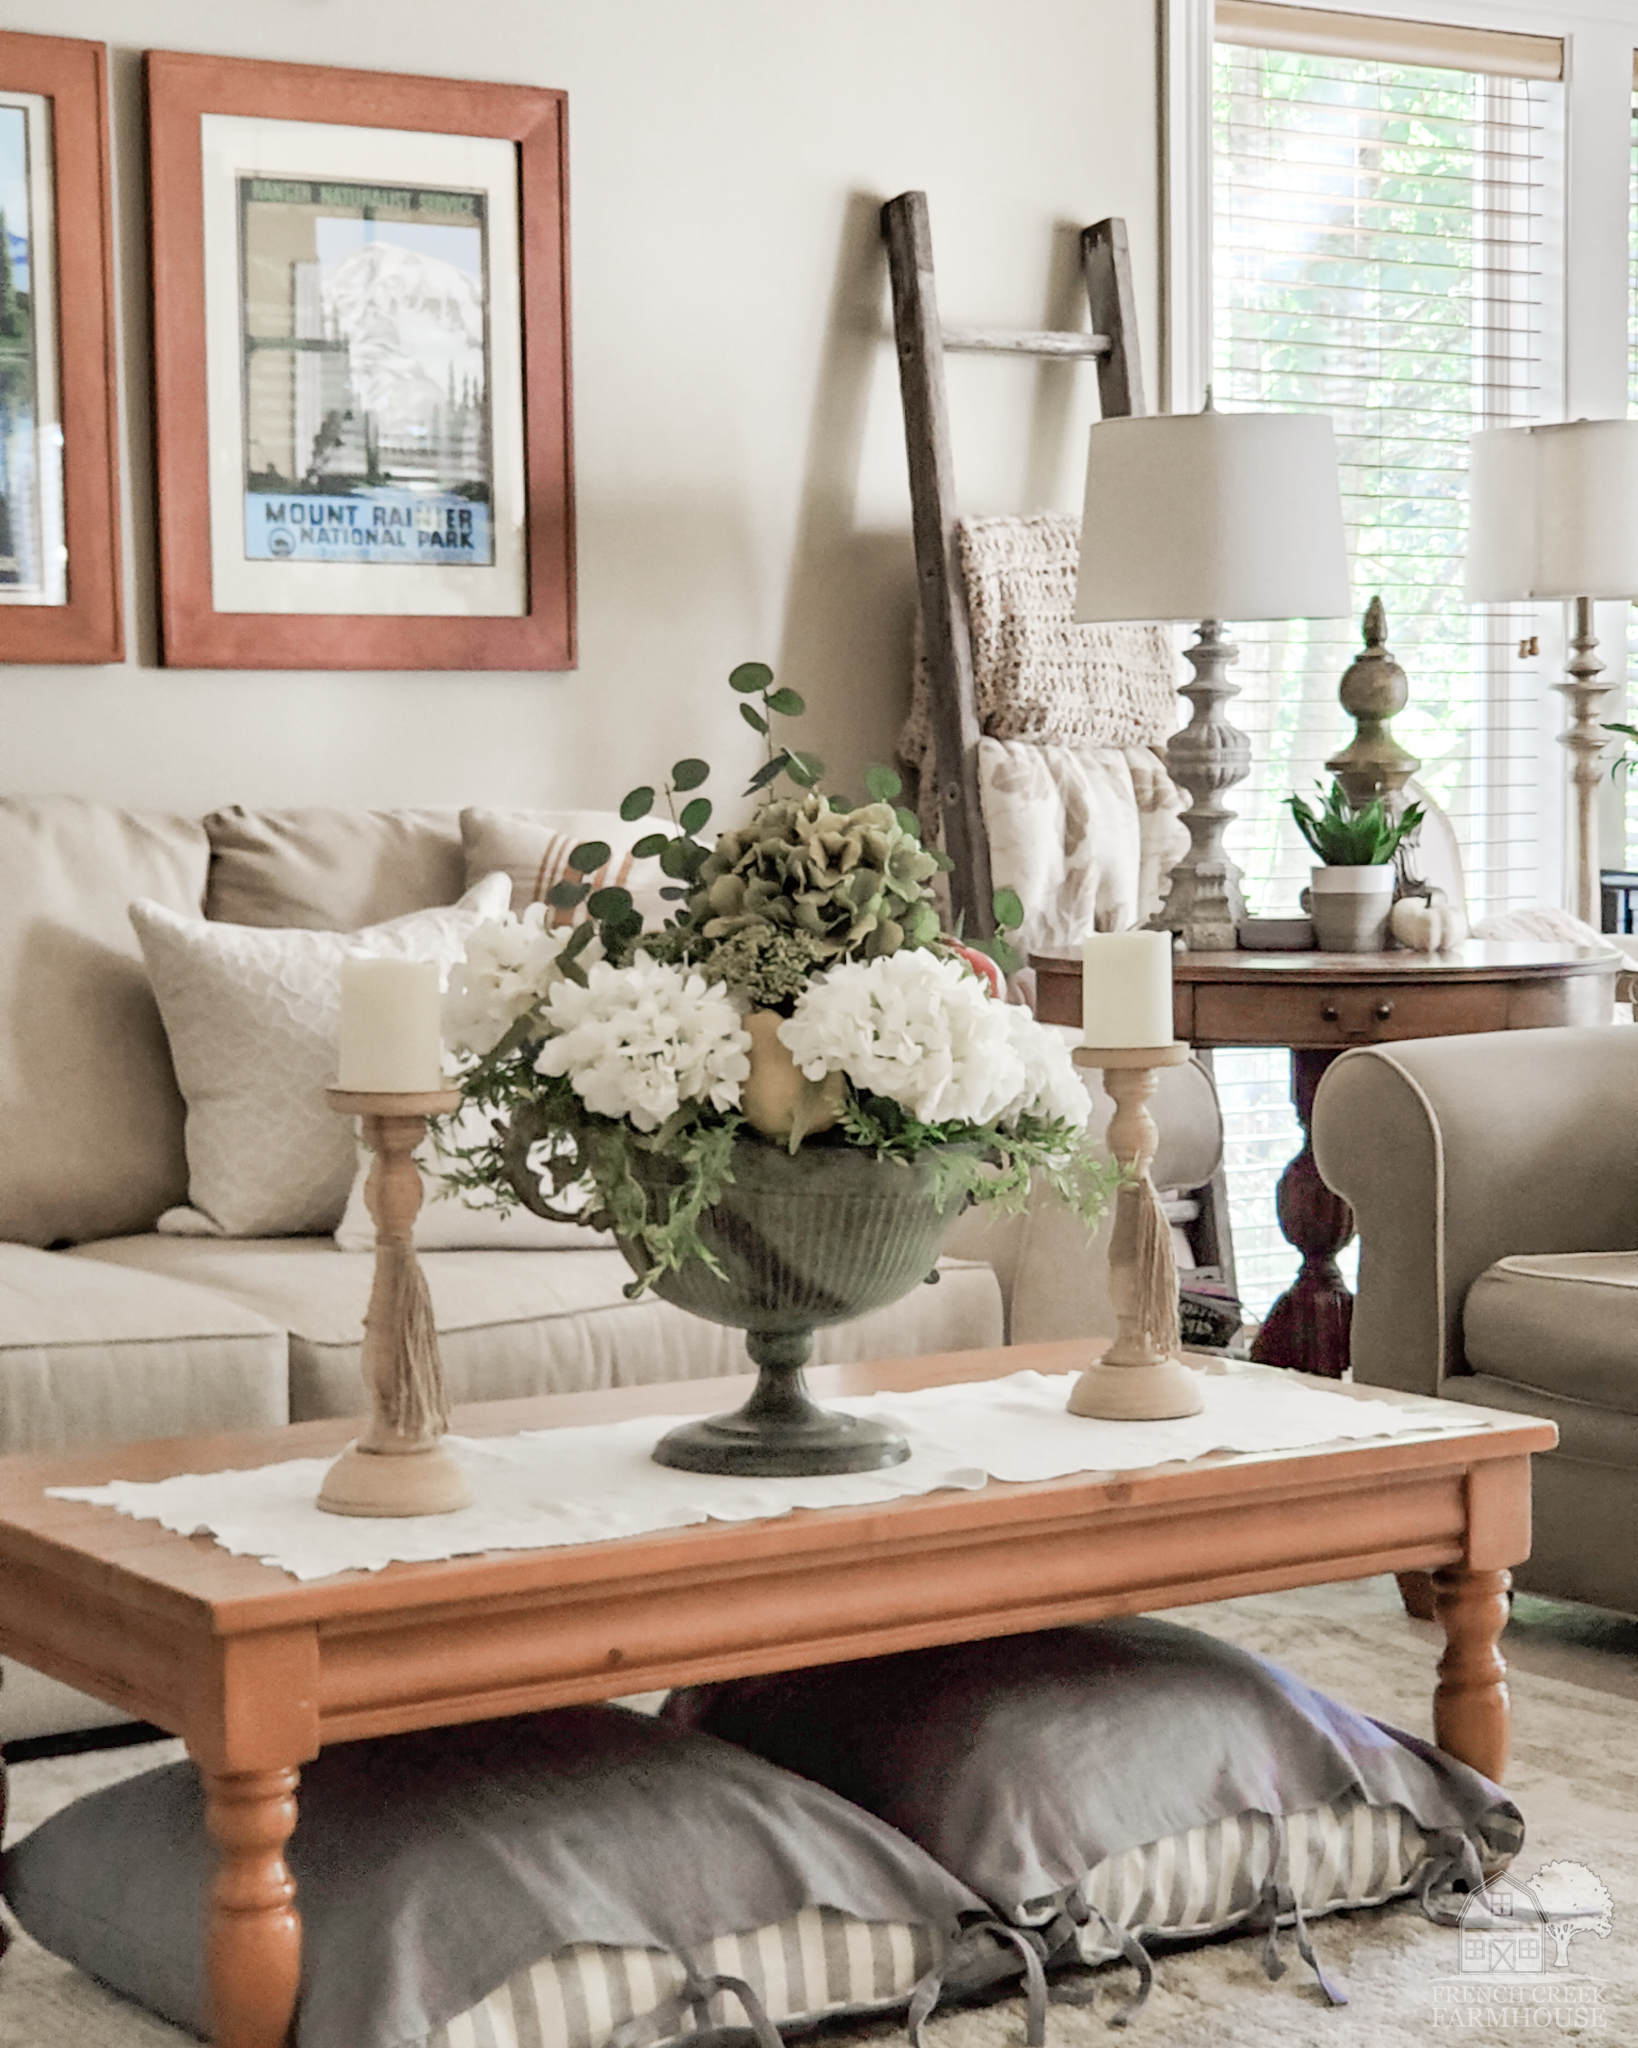 Cozy neutral decor and florals are ideal for autumn